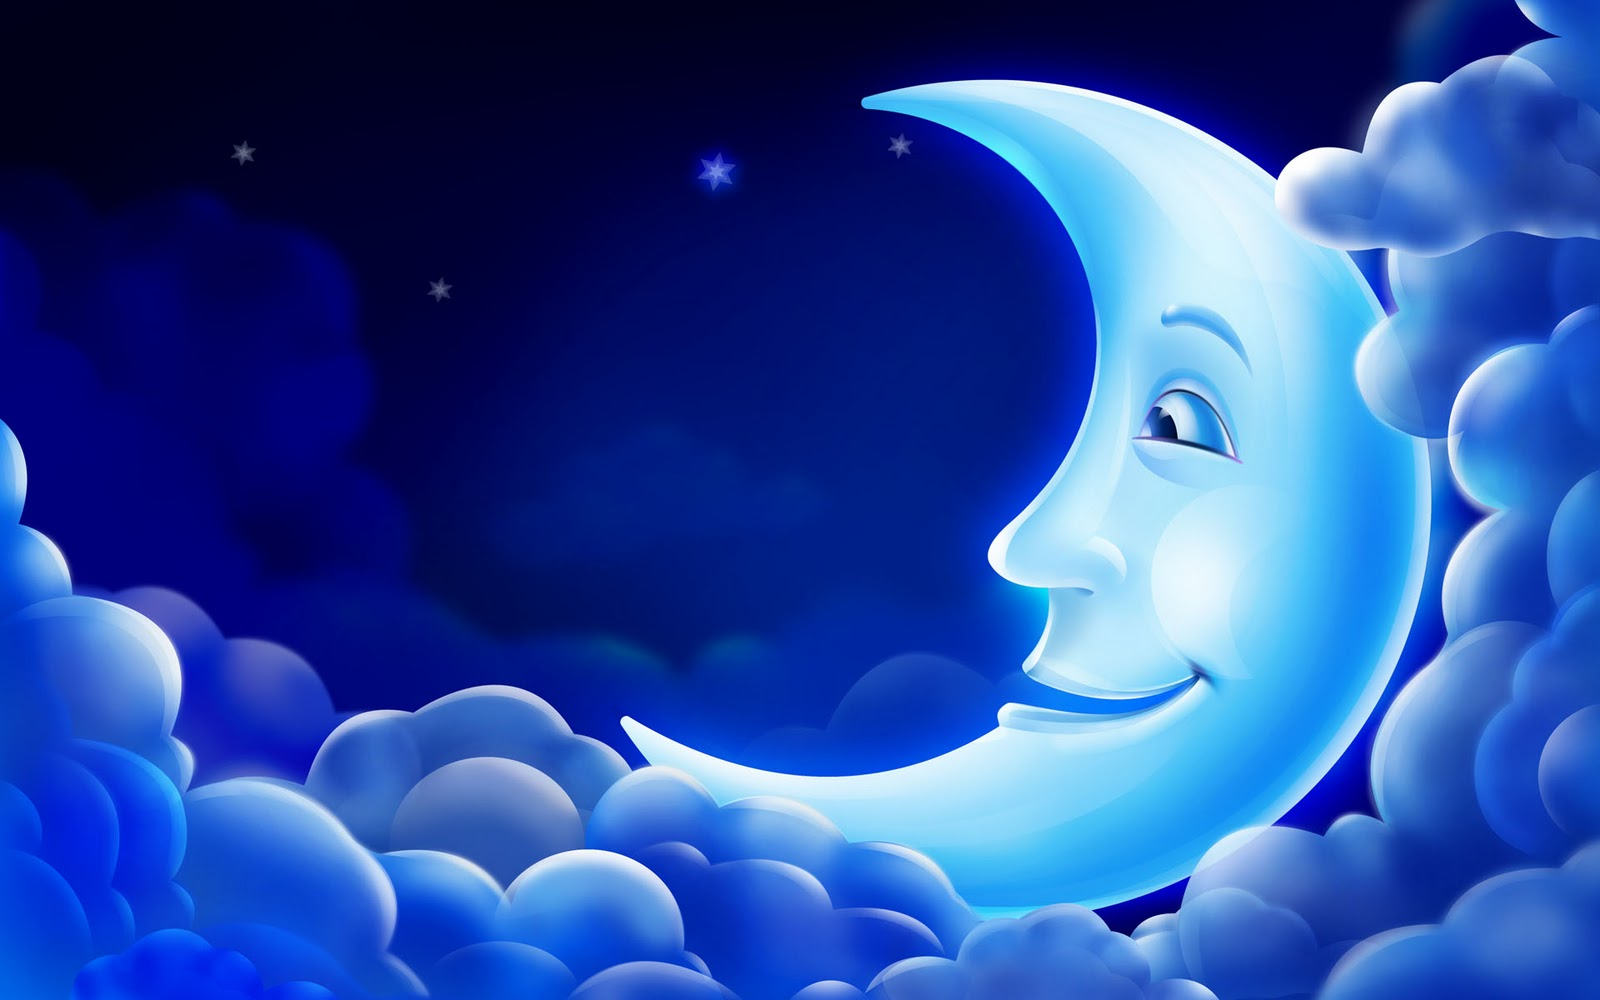 http://2.bp.blogspot.com/-95WJVcOsZZ4/Tcvef88NuDI/AAAAAAAAGSI/tlcYnId_2pk/s1600/CG%203D%20Animation%20PC%20Background%20blue%20moon%20smile%20sky%20%20star%20wallpapers.jpg